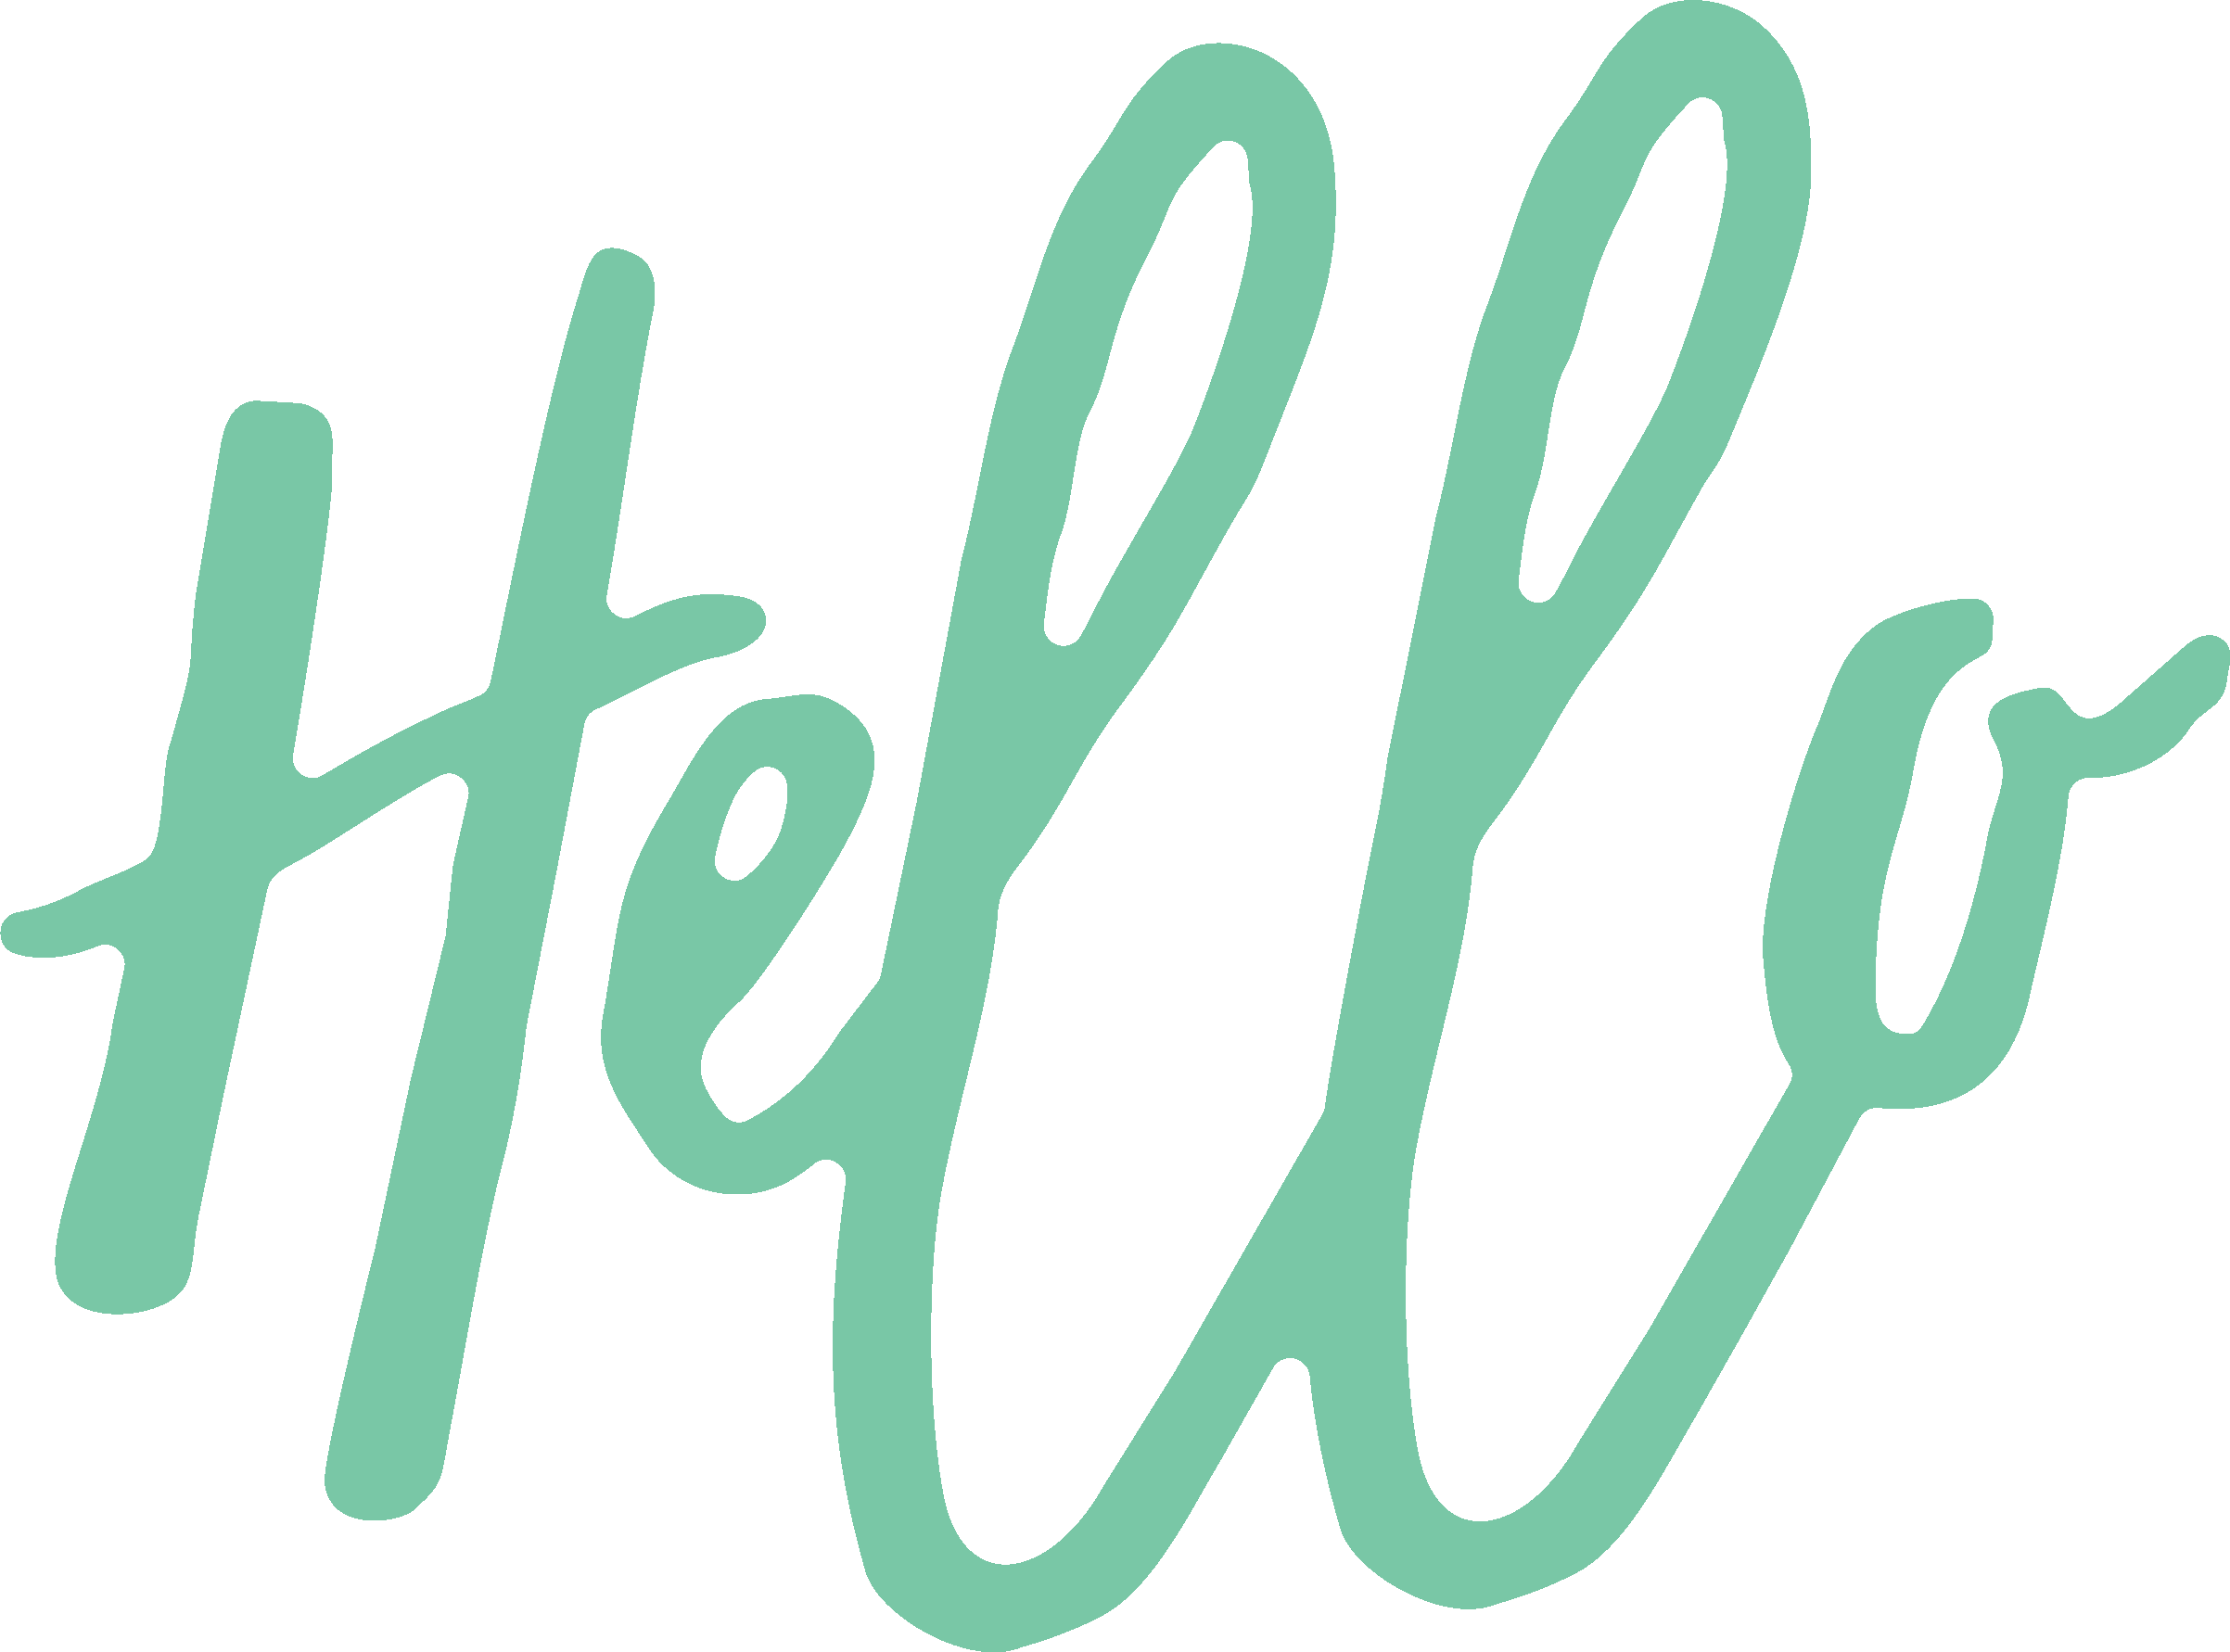 Best Summer Ever Hello SVG Cut File